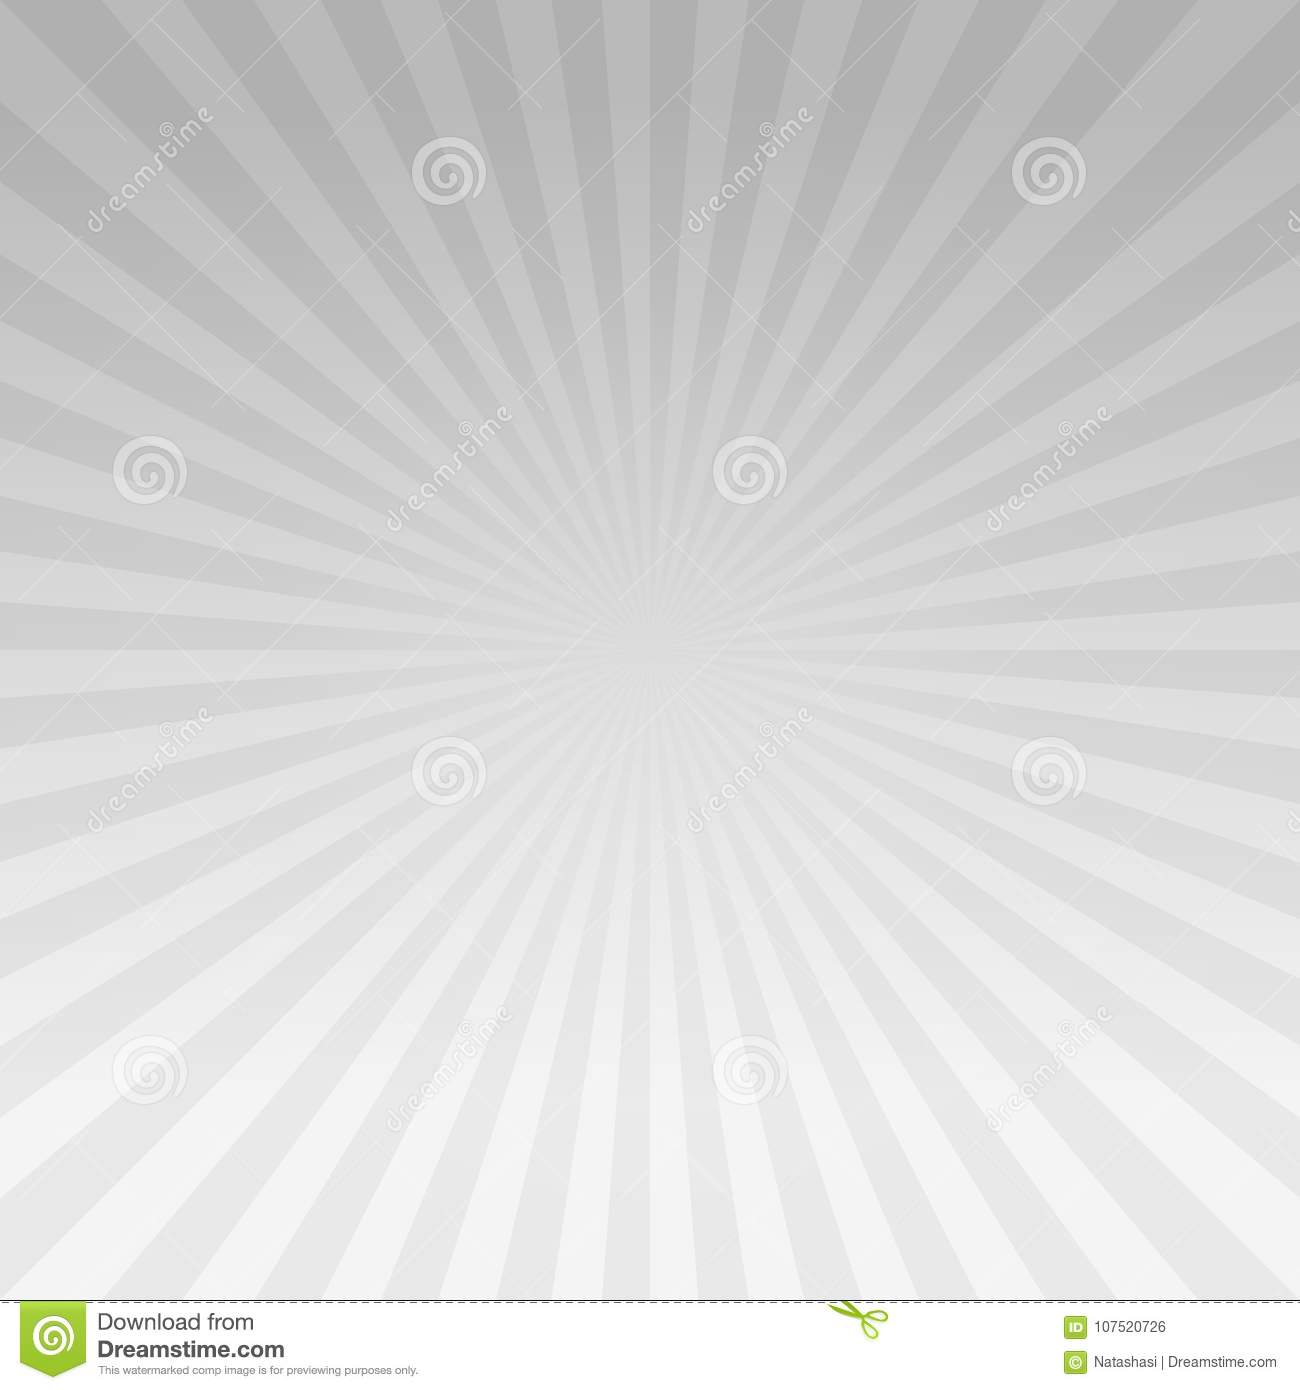 e49014adf2 Abstract Light Gray Gradient Rays Background. Vector EPS 10 Cmyk ...